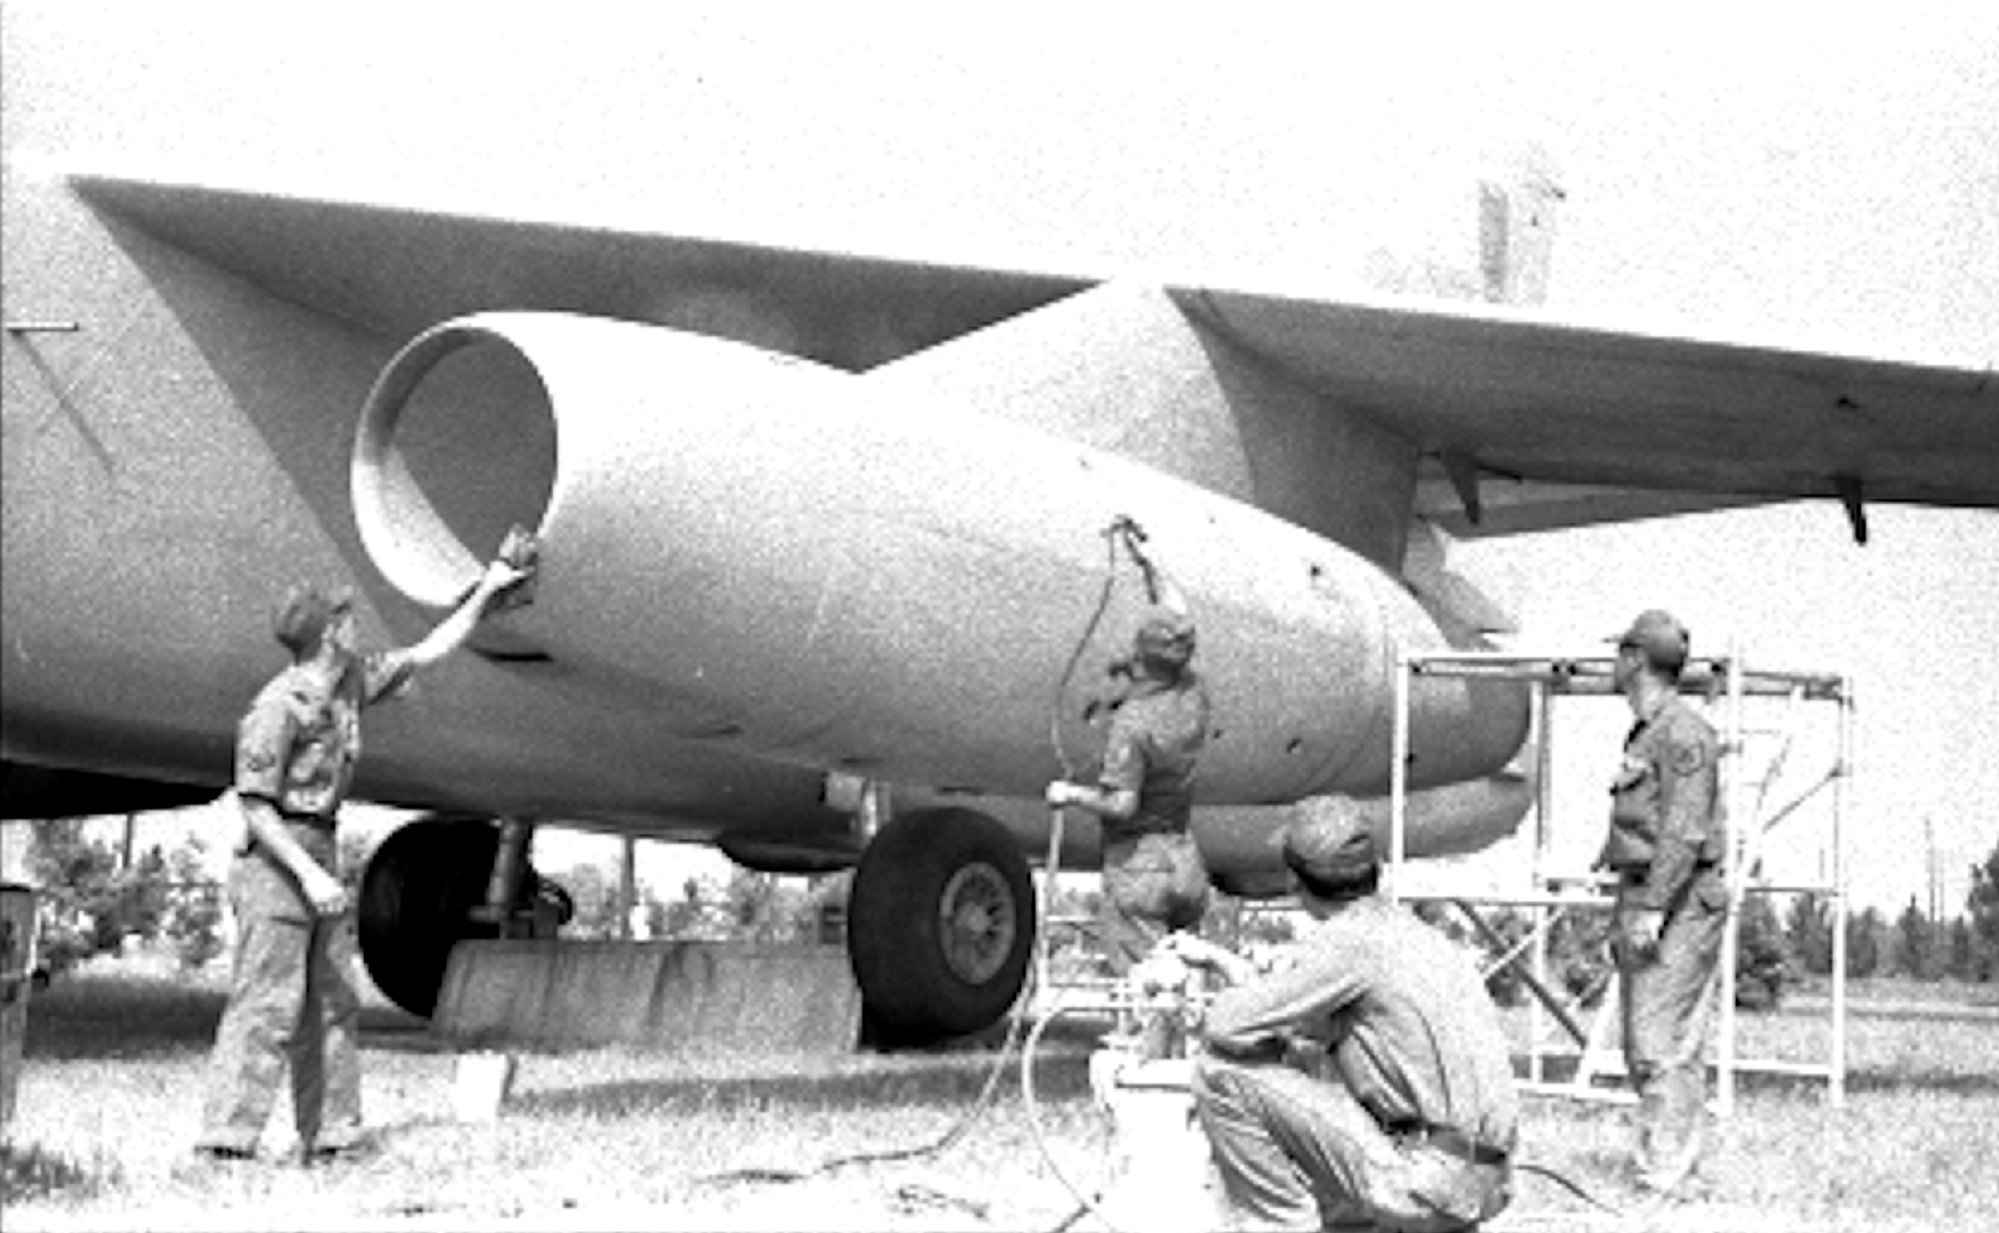 ABOVE LEFT: In 1969, airmen paint the RB-66 Destroyer which was donated to the City of Sumter and eventually returned to the Air Force. ABOVE RIGHT: City firemen and Air Force engineers remove a wing section from the aircraft After the wings and other sections were removed, the plane was towed to Poinsett Gunnery Range for use as a target in simulated fighter attacks, Air Force officials say.